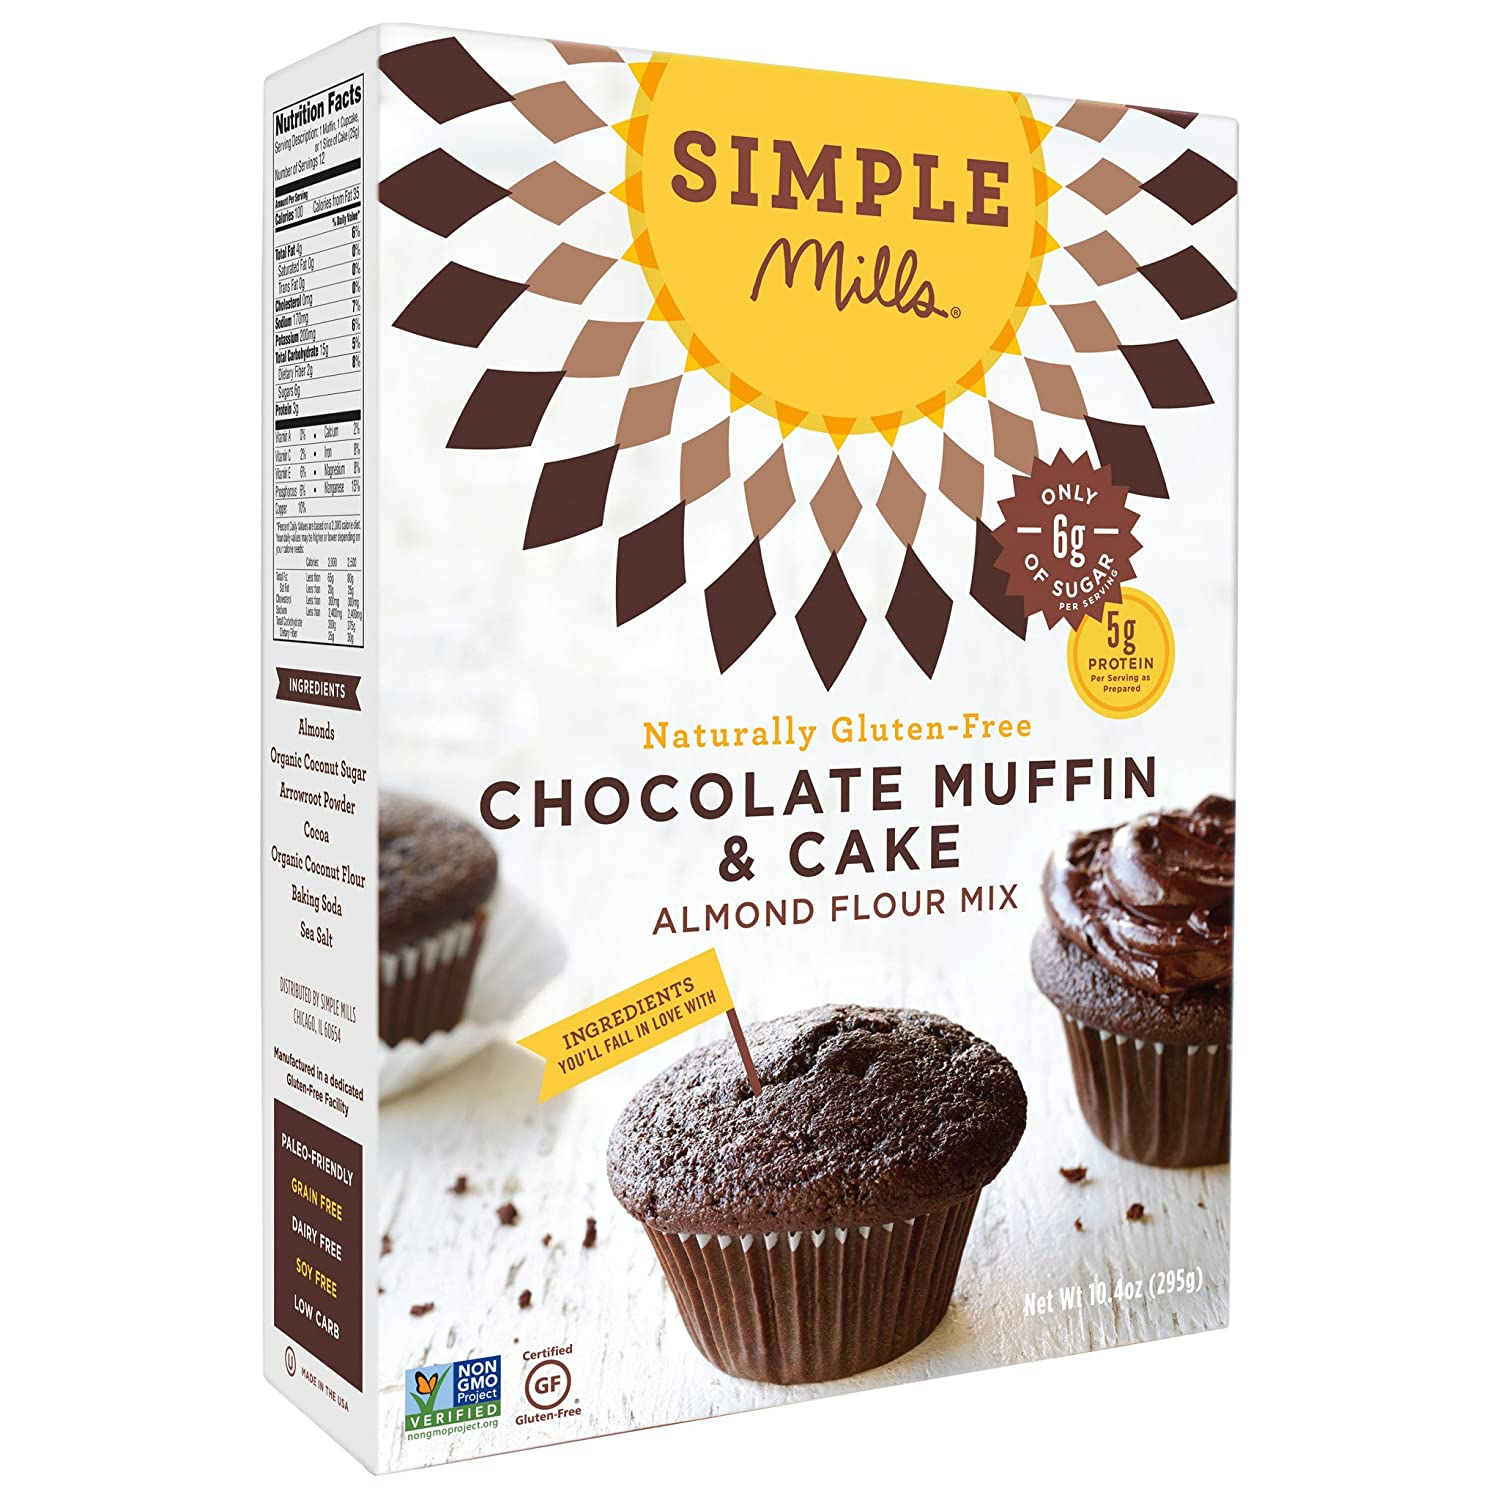 Simple Mills Chocolate Muffin In stock Cake Mix 10 Pack Oz 2 Paleo Max 90% OFF